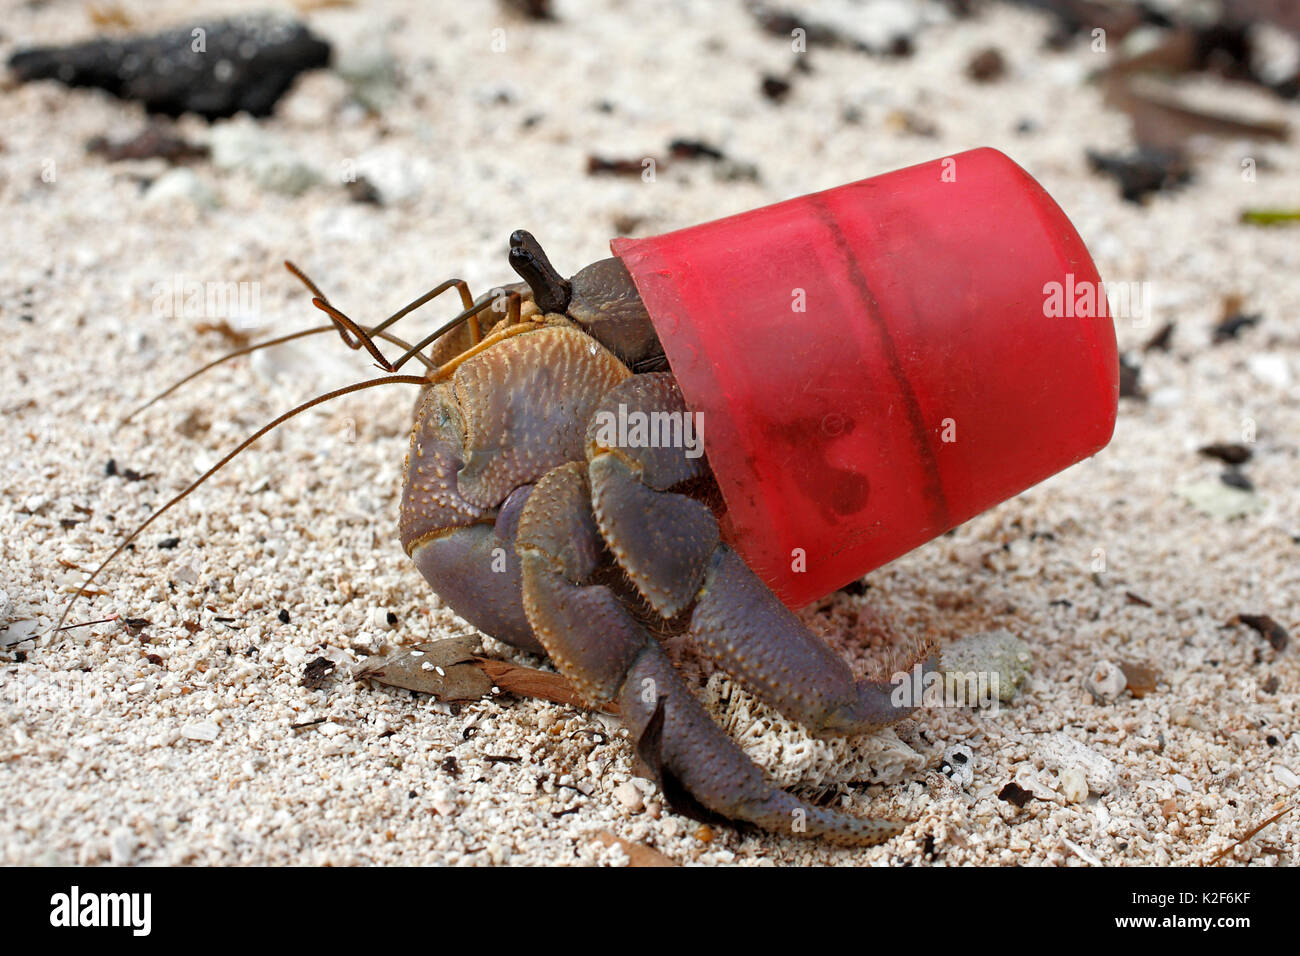 terrestrial-hermit-crab-coenobita-brevimanus-using-a-red-bottle-cap-K2F6KF.jpg